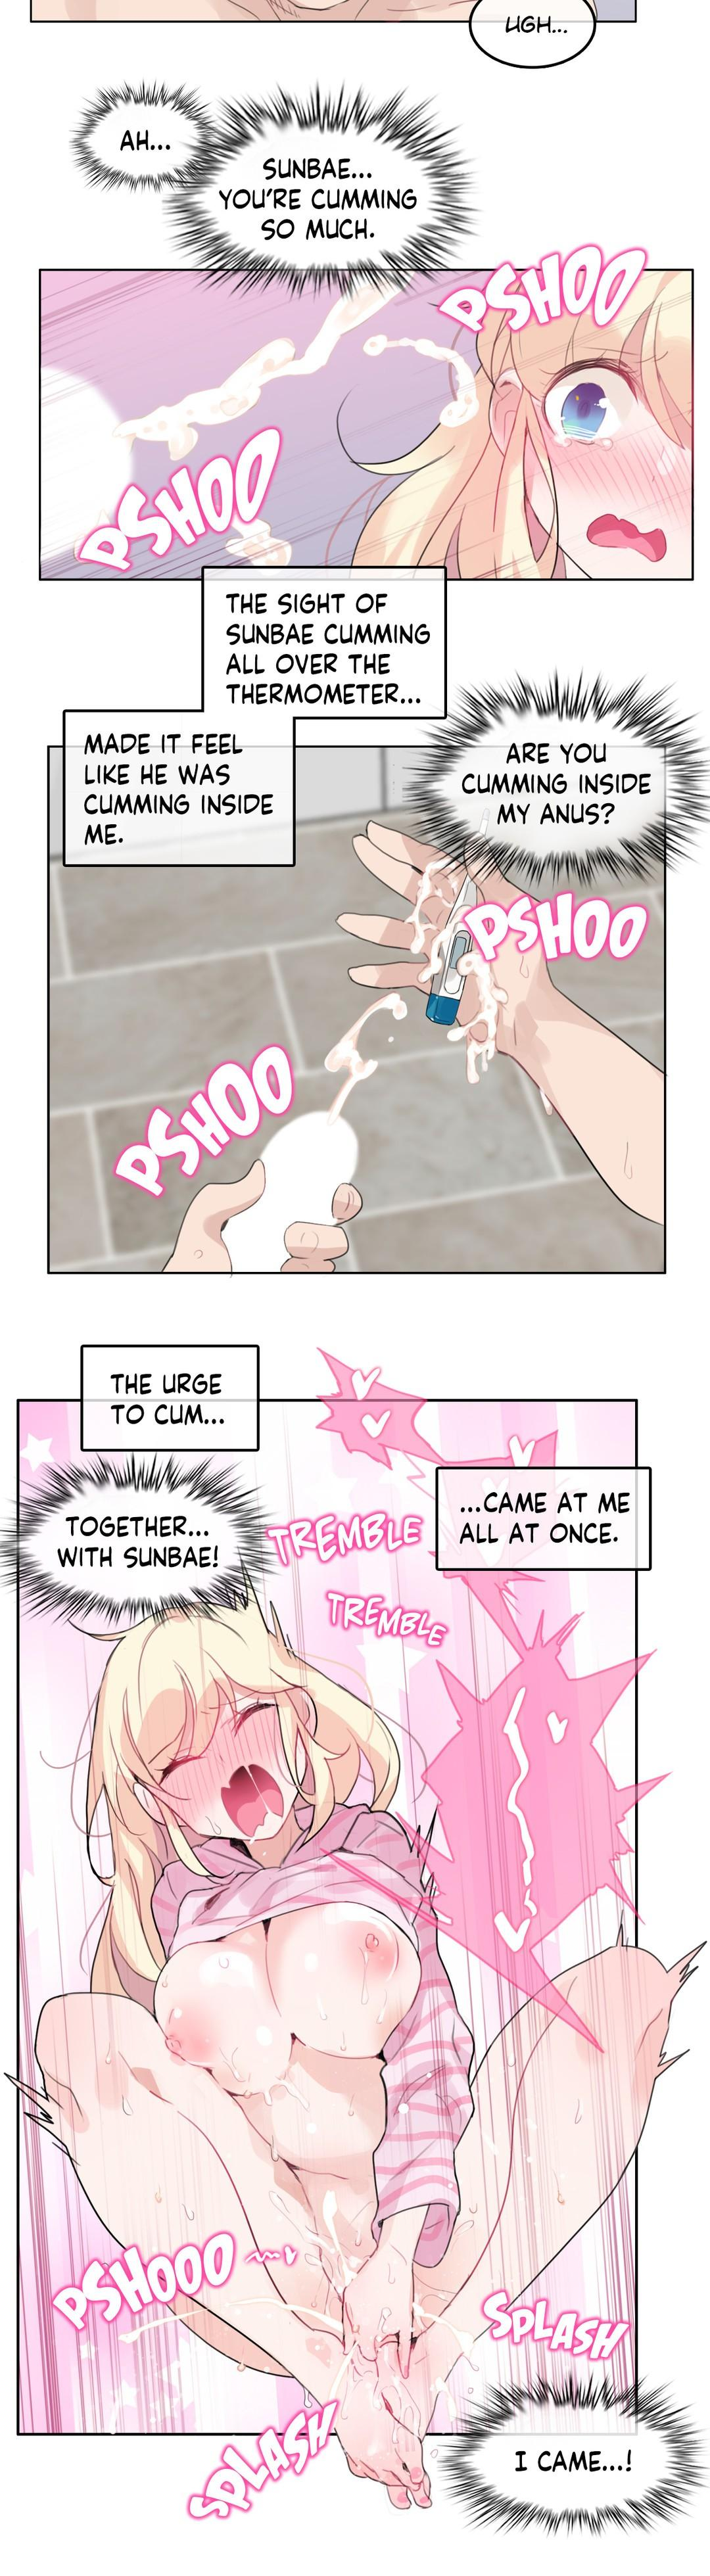 A Pervert's Daily Life Ch. 1-34 367